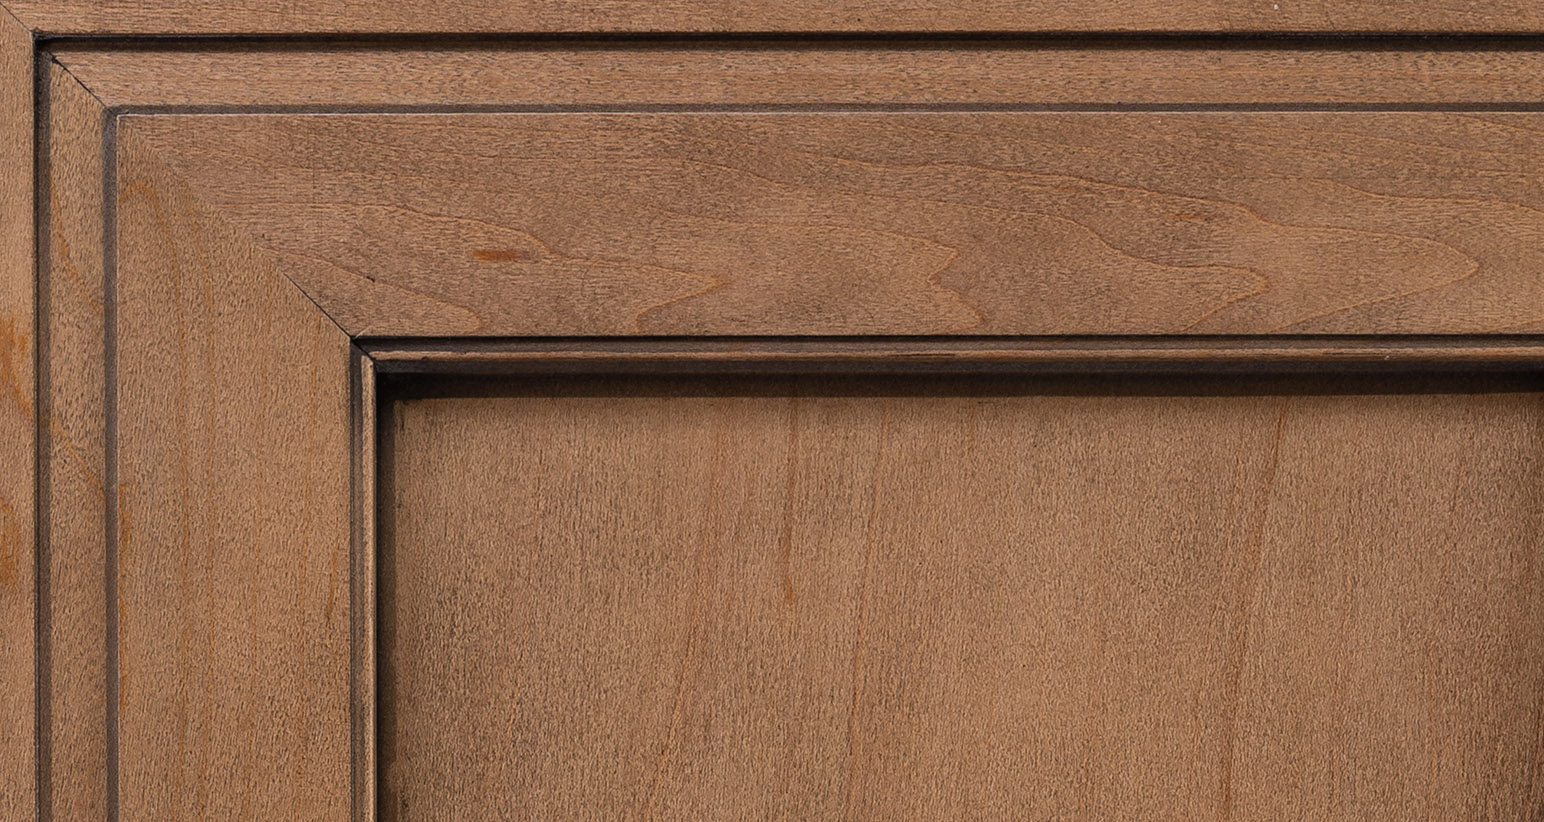 Cabinetry 3